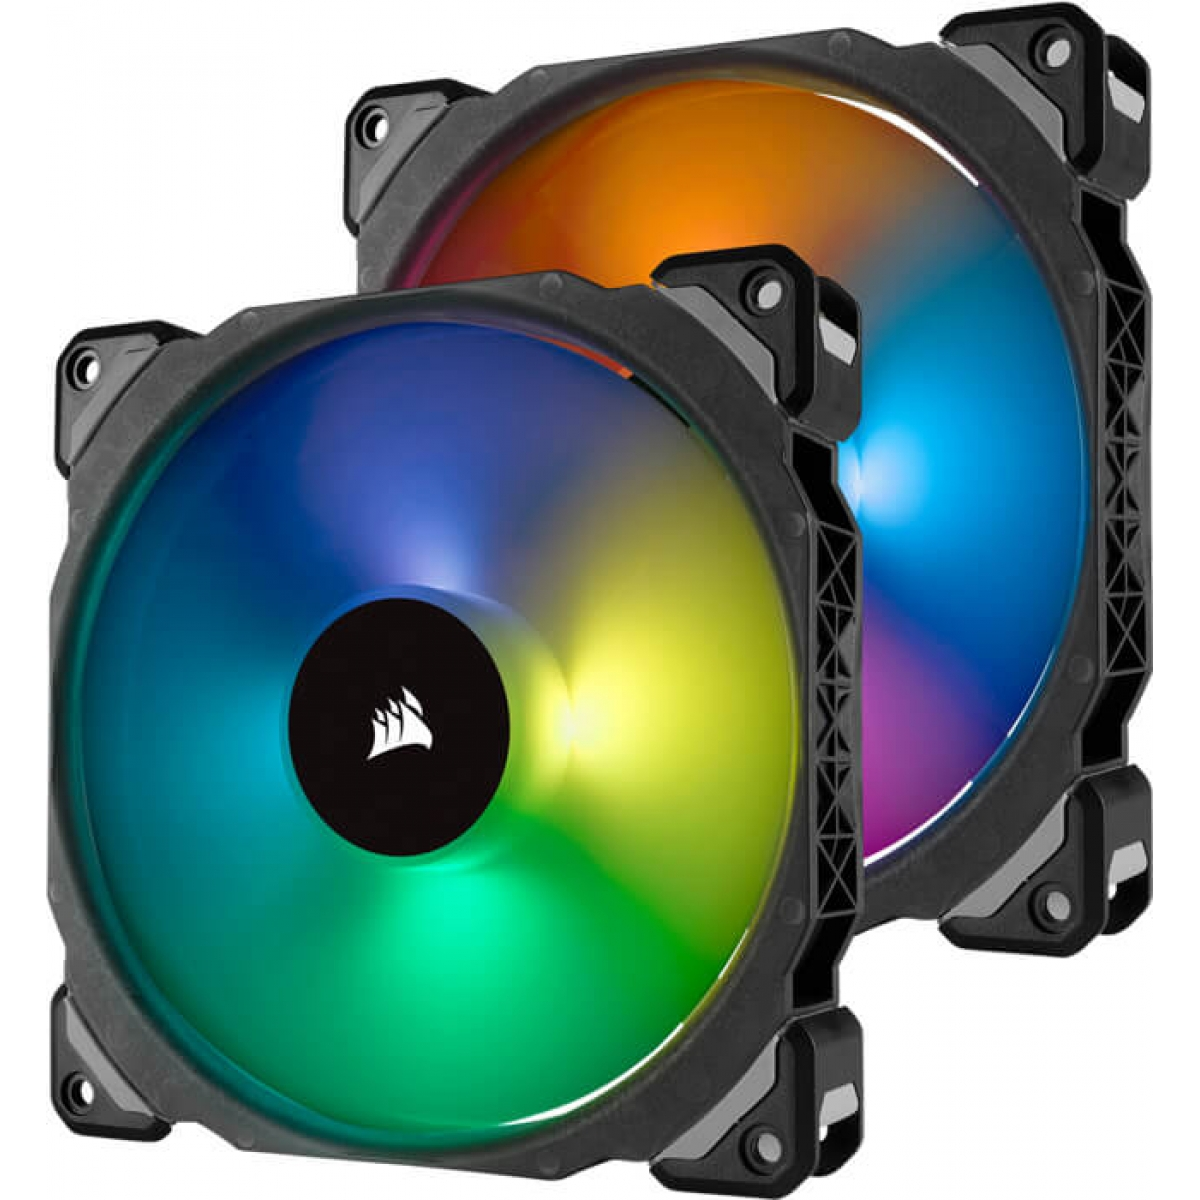 Kit Fan com 2 Unidades Corsair ML140 PRO, RGB 140mm, CO-9050078-WW